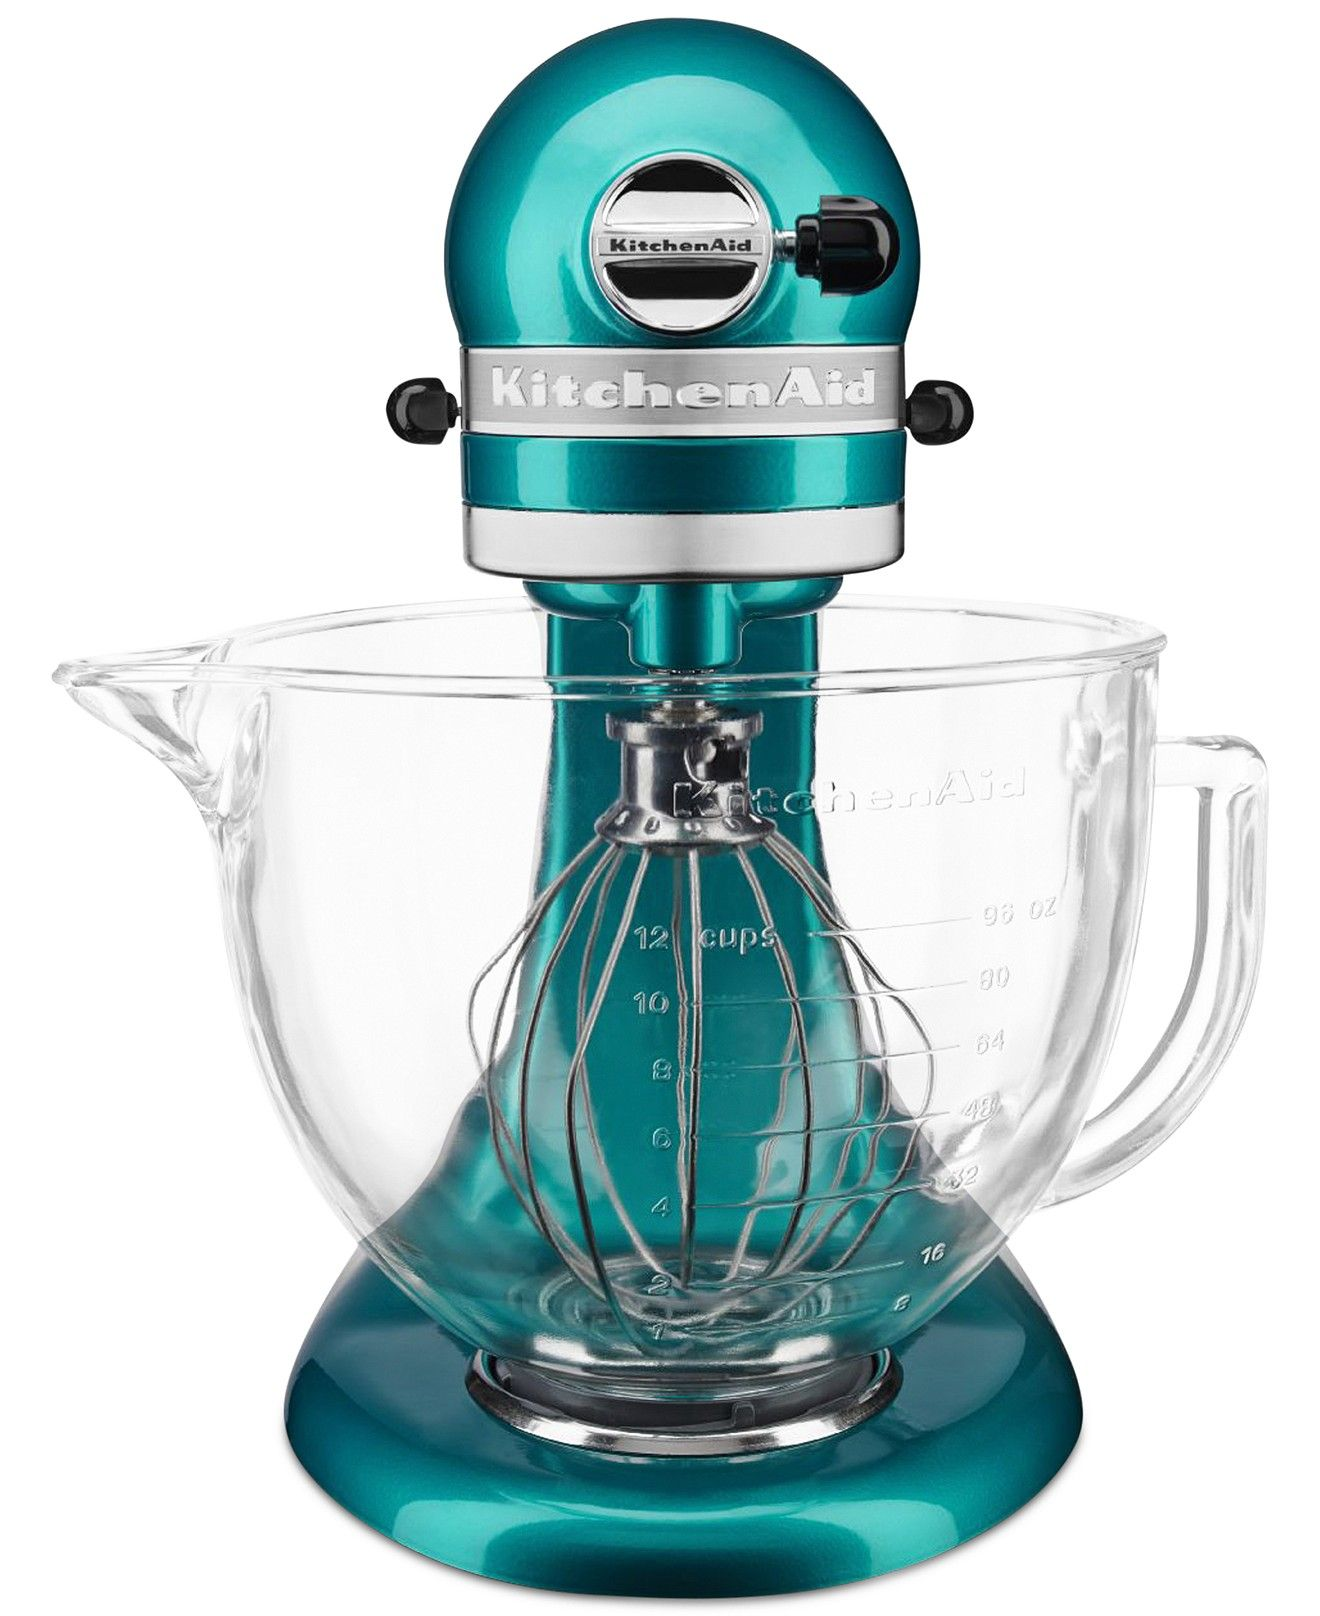 KitchenAid KSM155 5 Qt. Stand Mixer | Kitchens, KitchenAid and Mixers